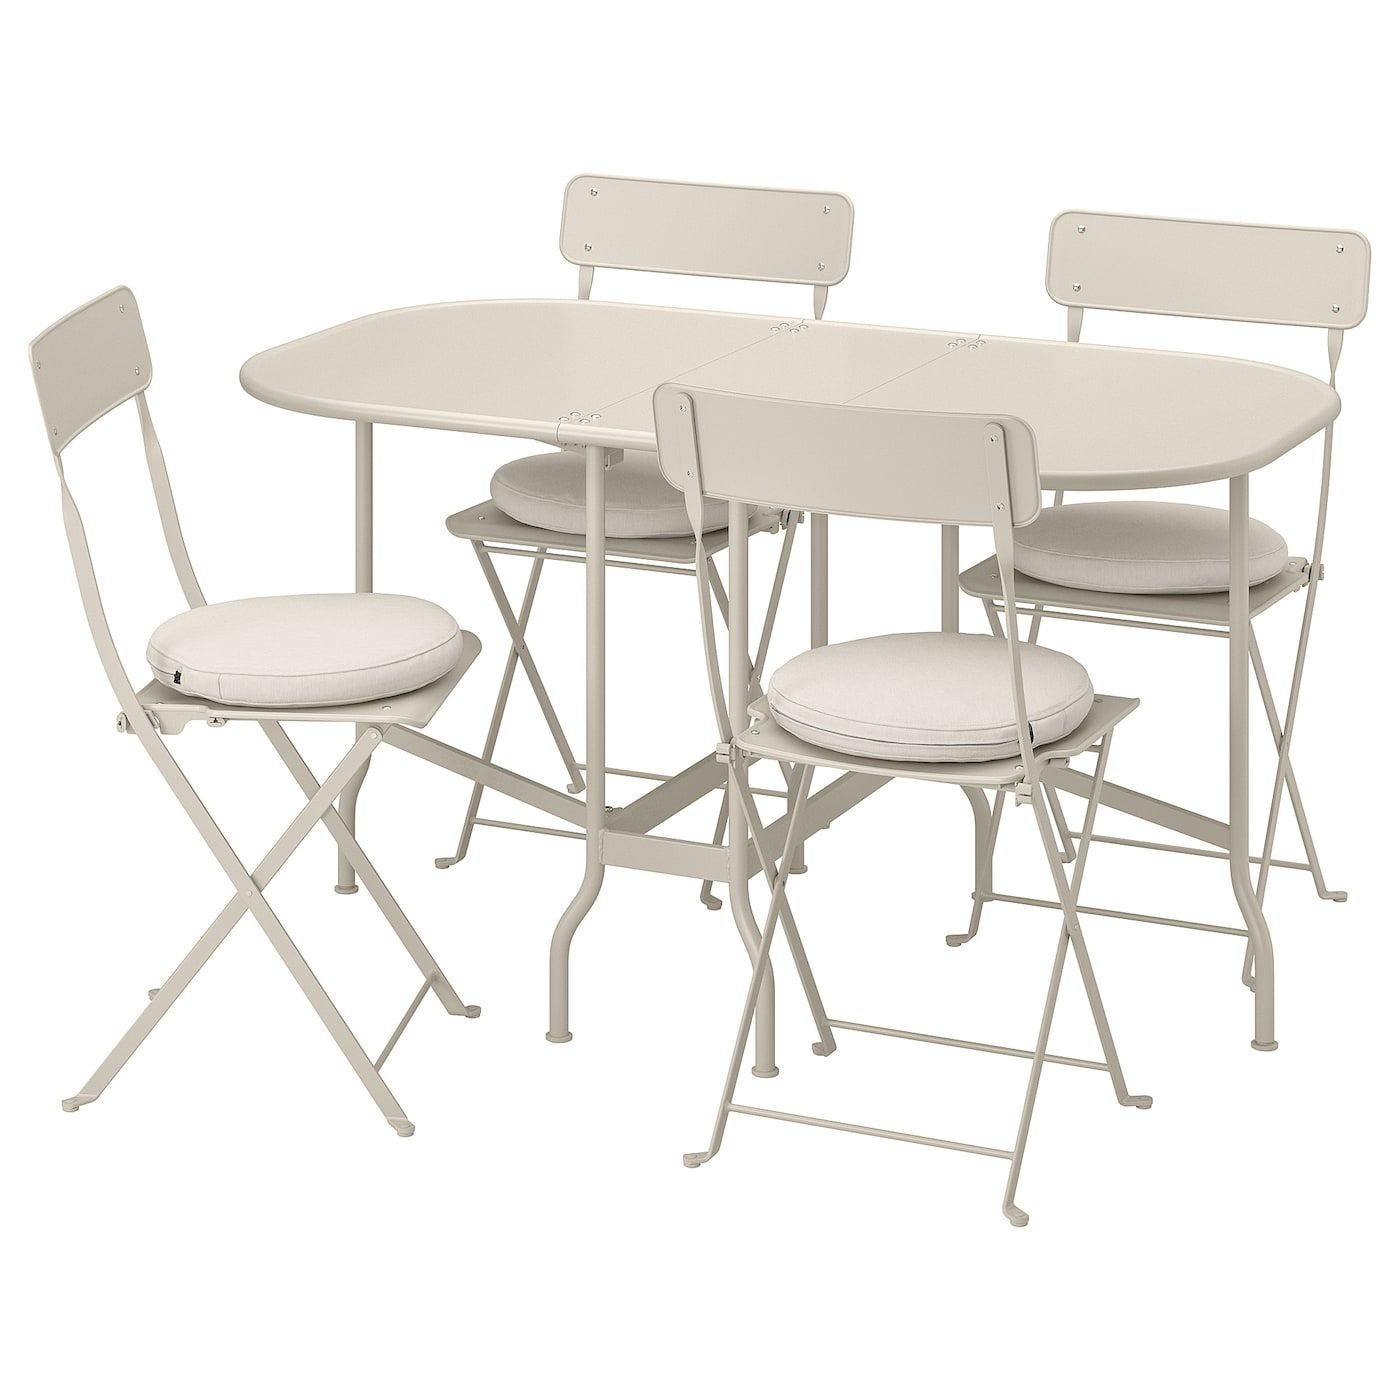 SALTHOLMEN Gateleg table+4 chairs, outdoor – beige, Frösön/Duvholmen beige – IKEA